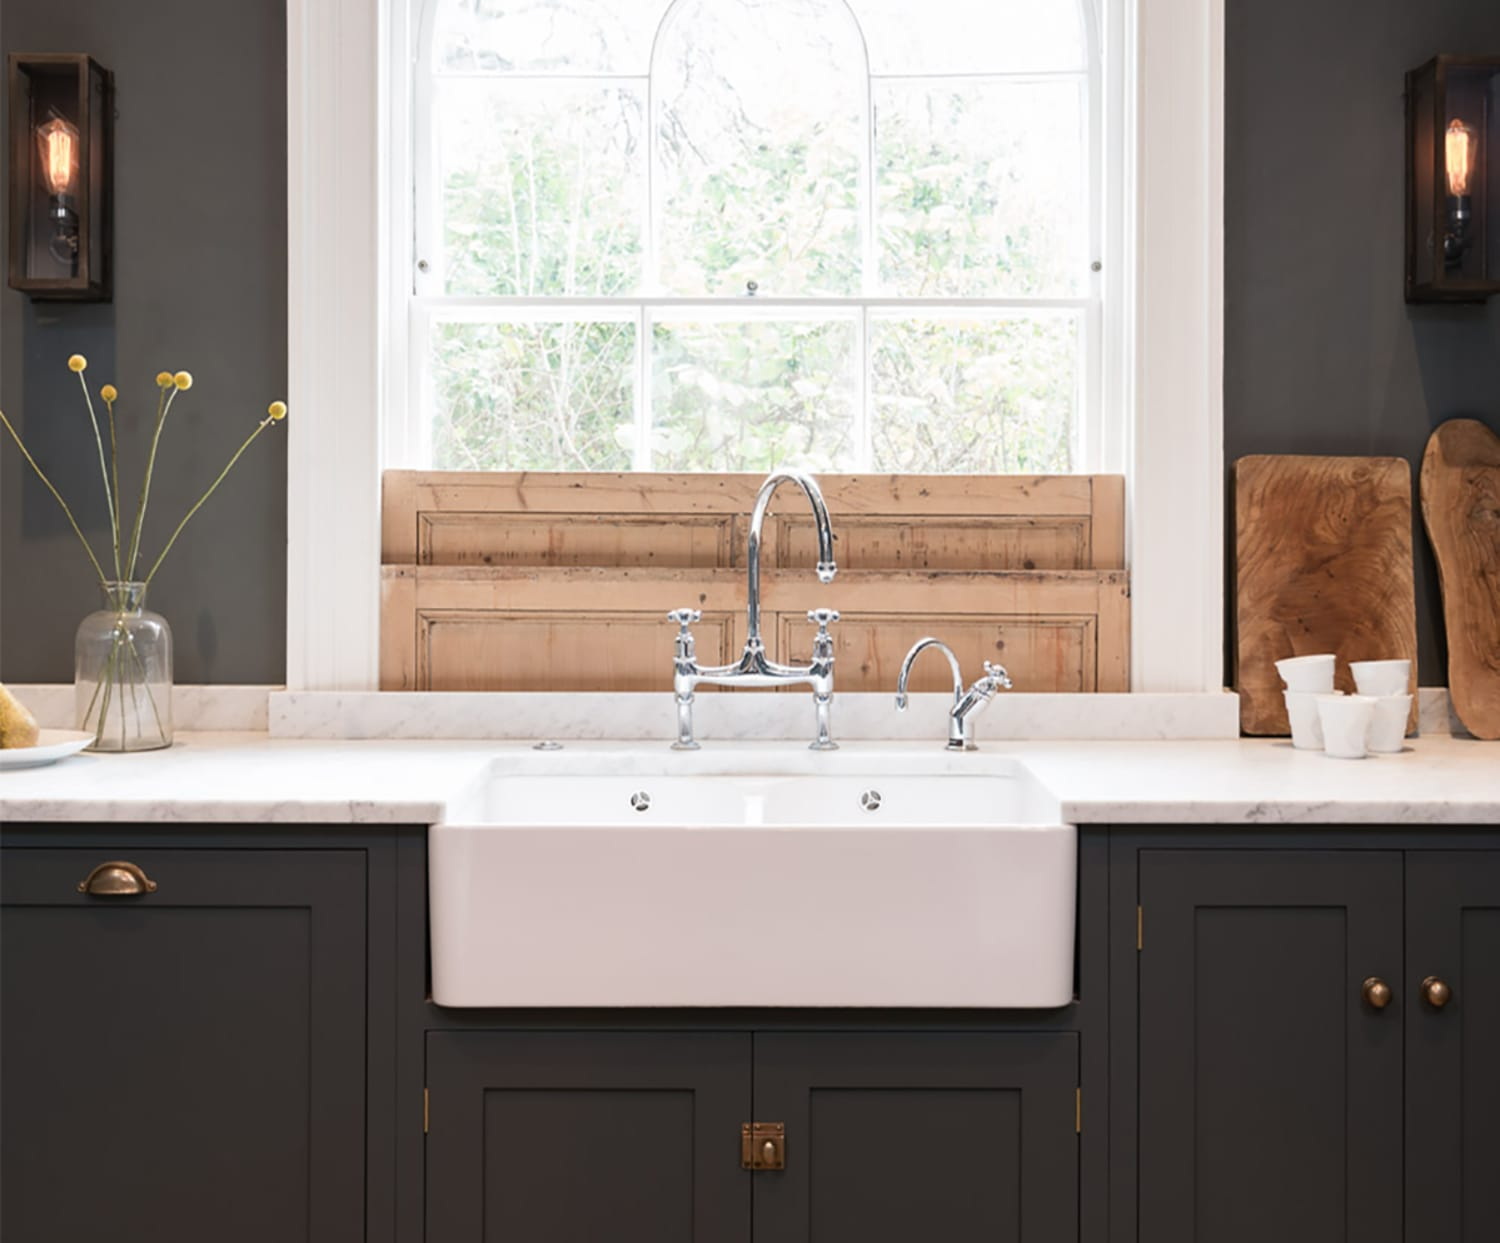 Farmhouse Fabulous: All About Apron Sinks